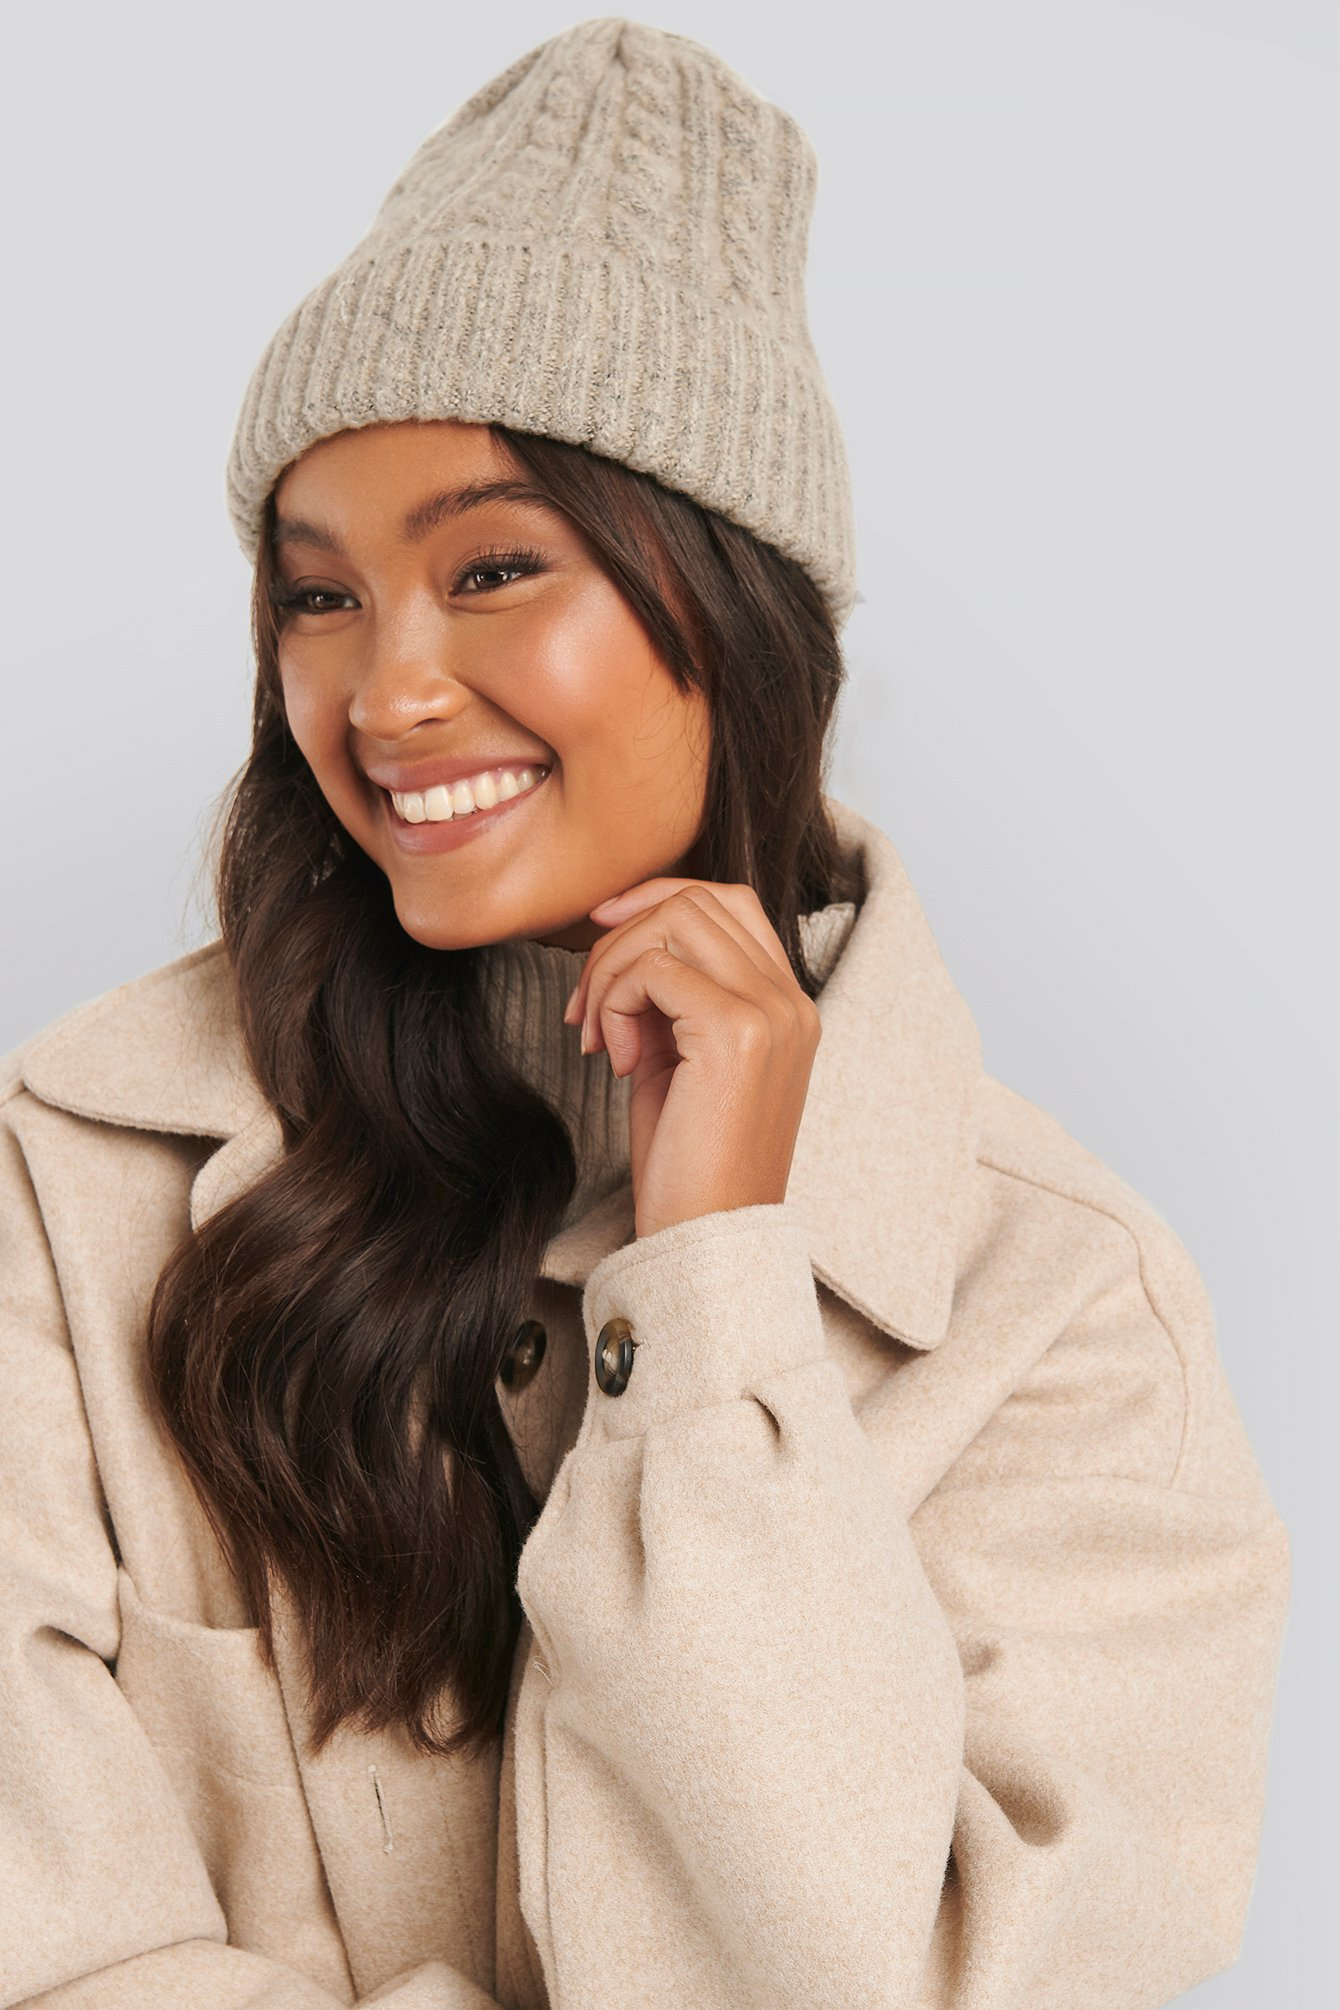 NA-KD Accessories Folded Cableknit Beanie - Beige | Accessoires > Mützen > Beanies | NA-KD Accessories